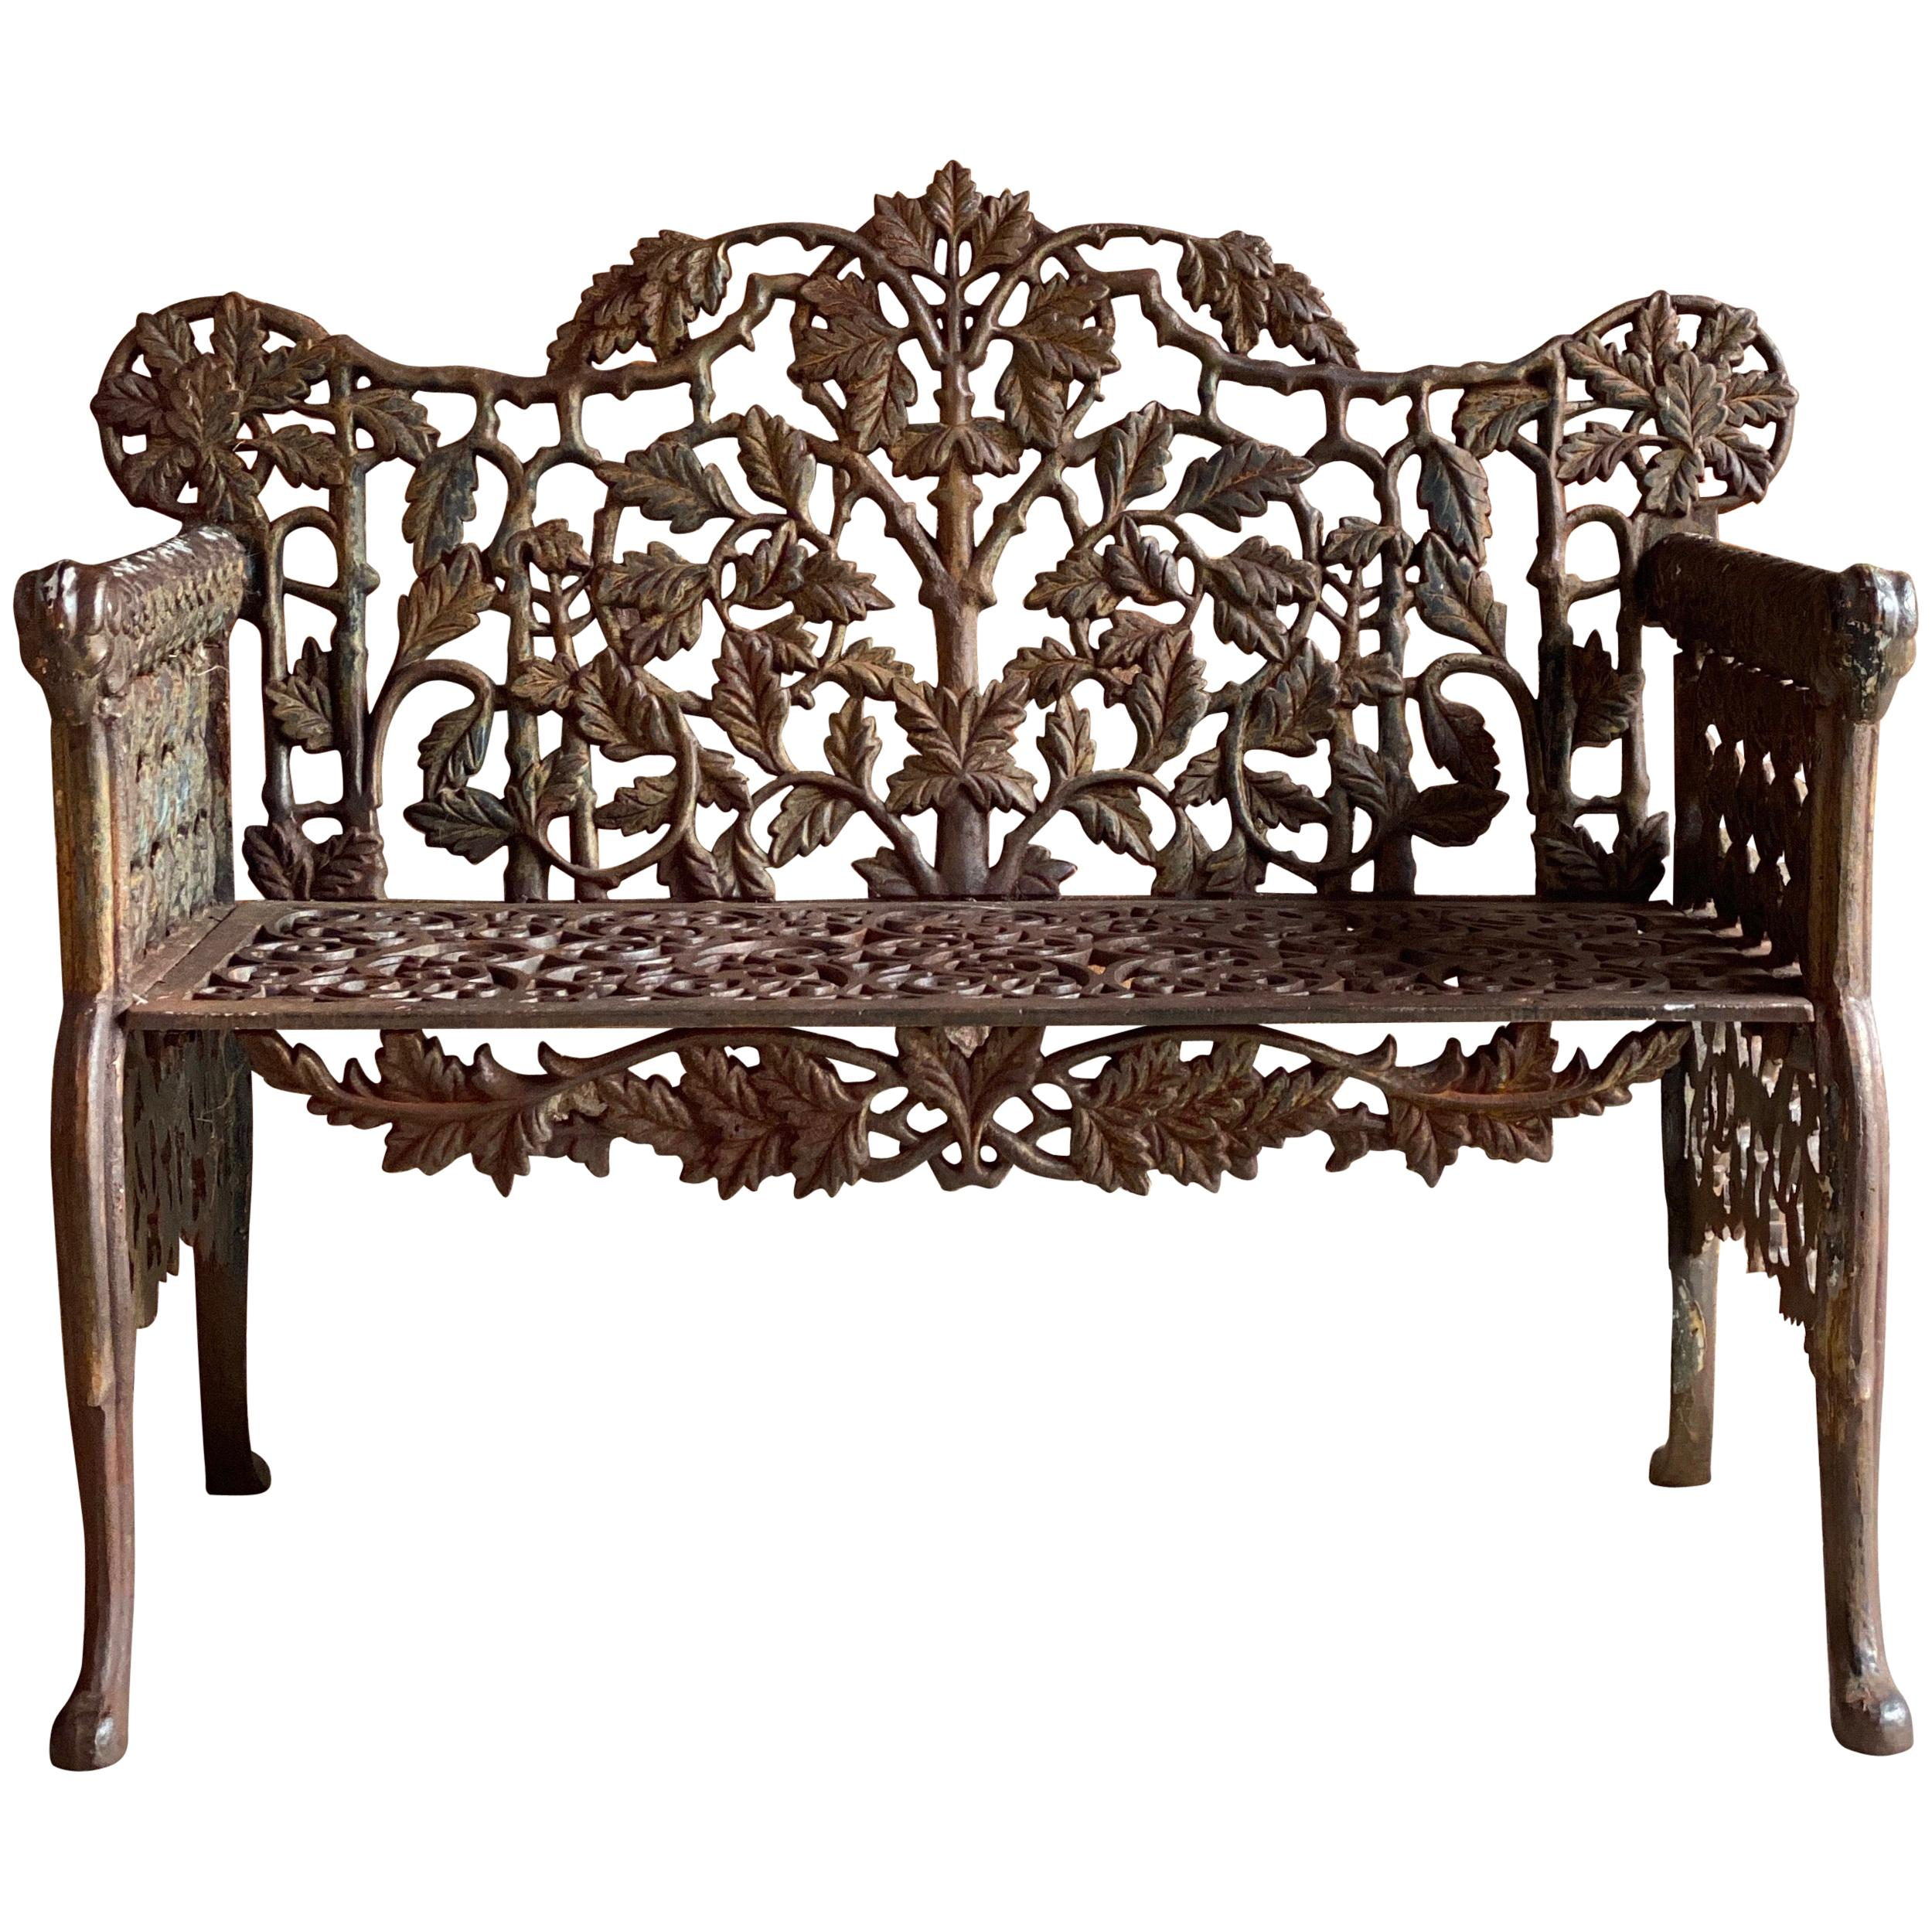 Enjoyable Victorian Benches 69 For Sale At 1Stdibs Evergreenethics Interior Chair Design Evergreenethicsorg